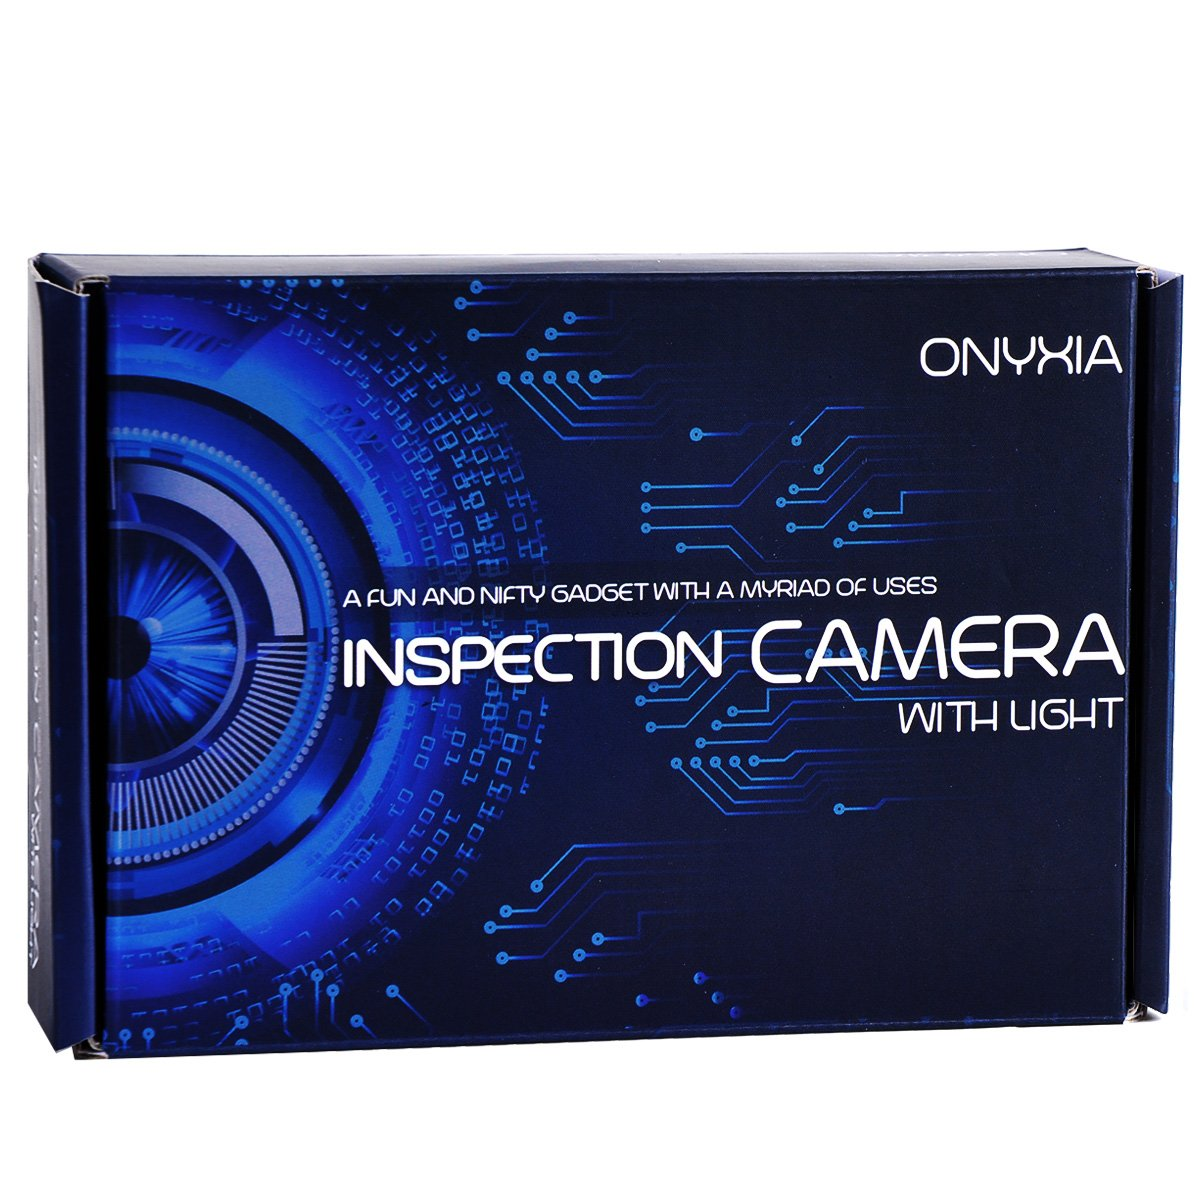 Inspection Camera with Light - Best Endoscope Inspection Camera with Extension Cable - Works with iPhone and Android App - Ideal Waterproof Smartphone Borescope Snake Inspection Camera by Onyxia (Image #8)